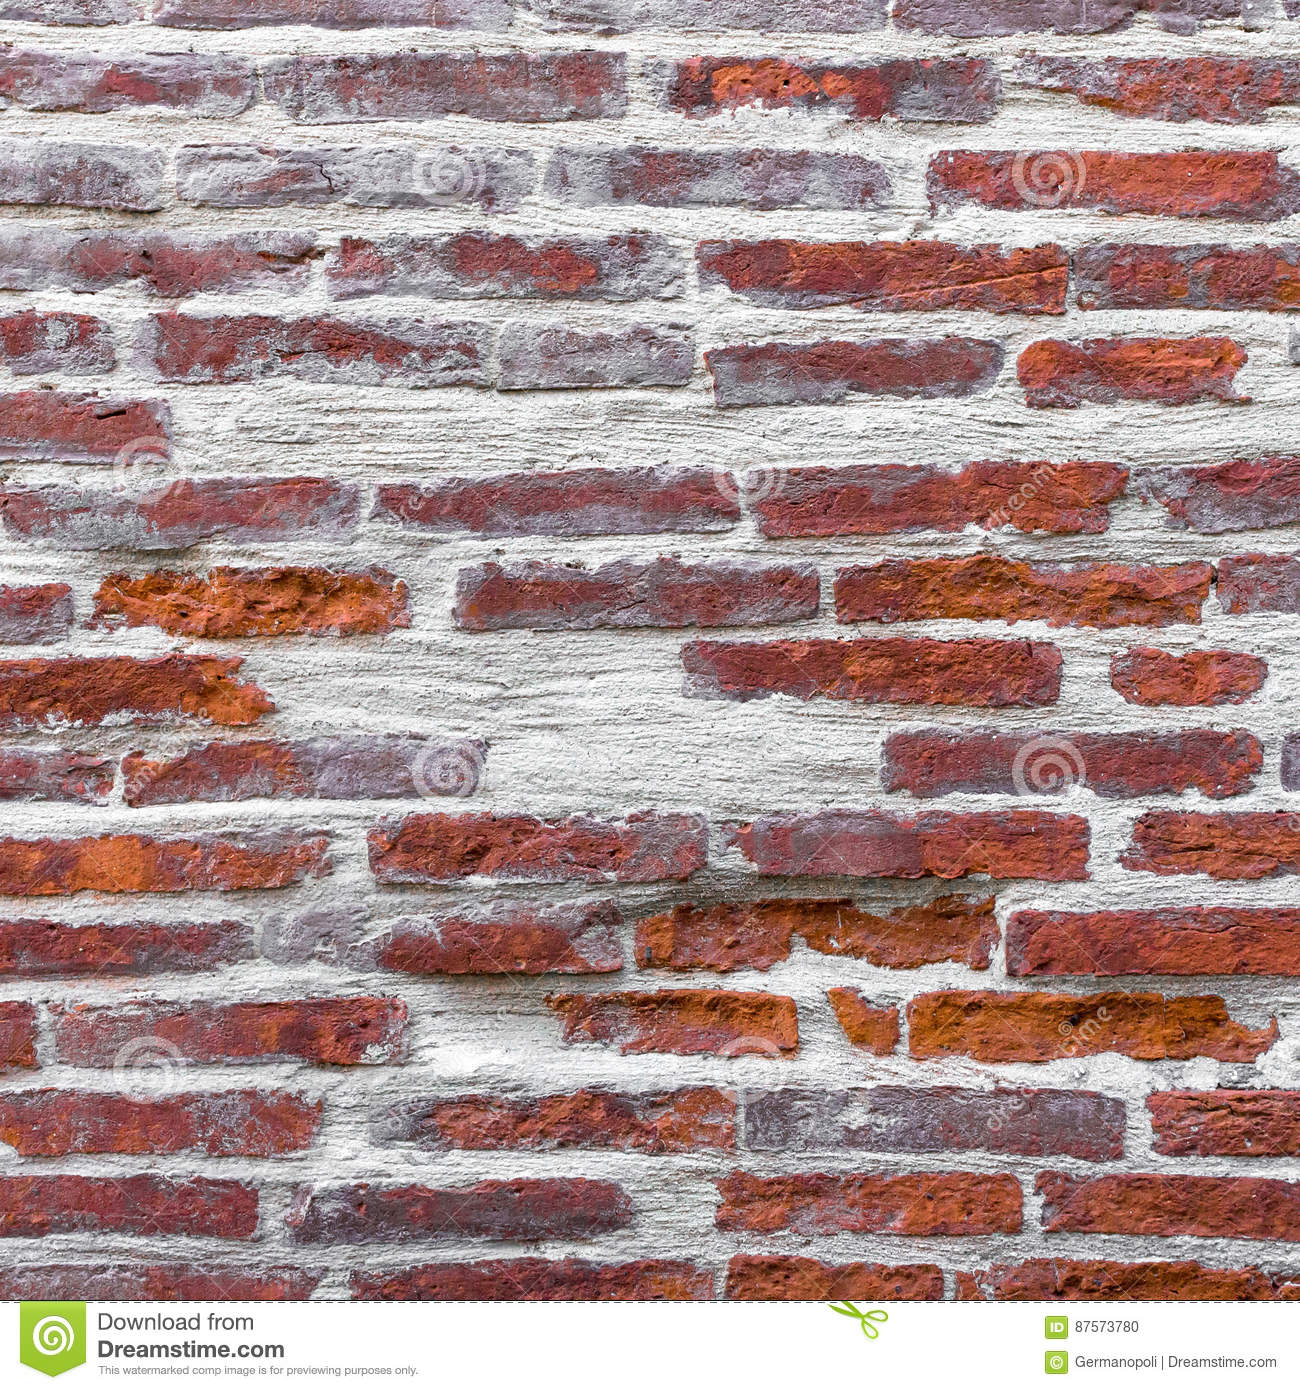 Wall with red bricks